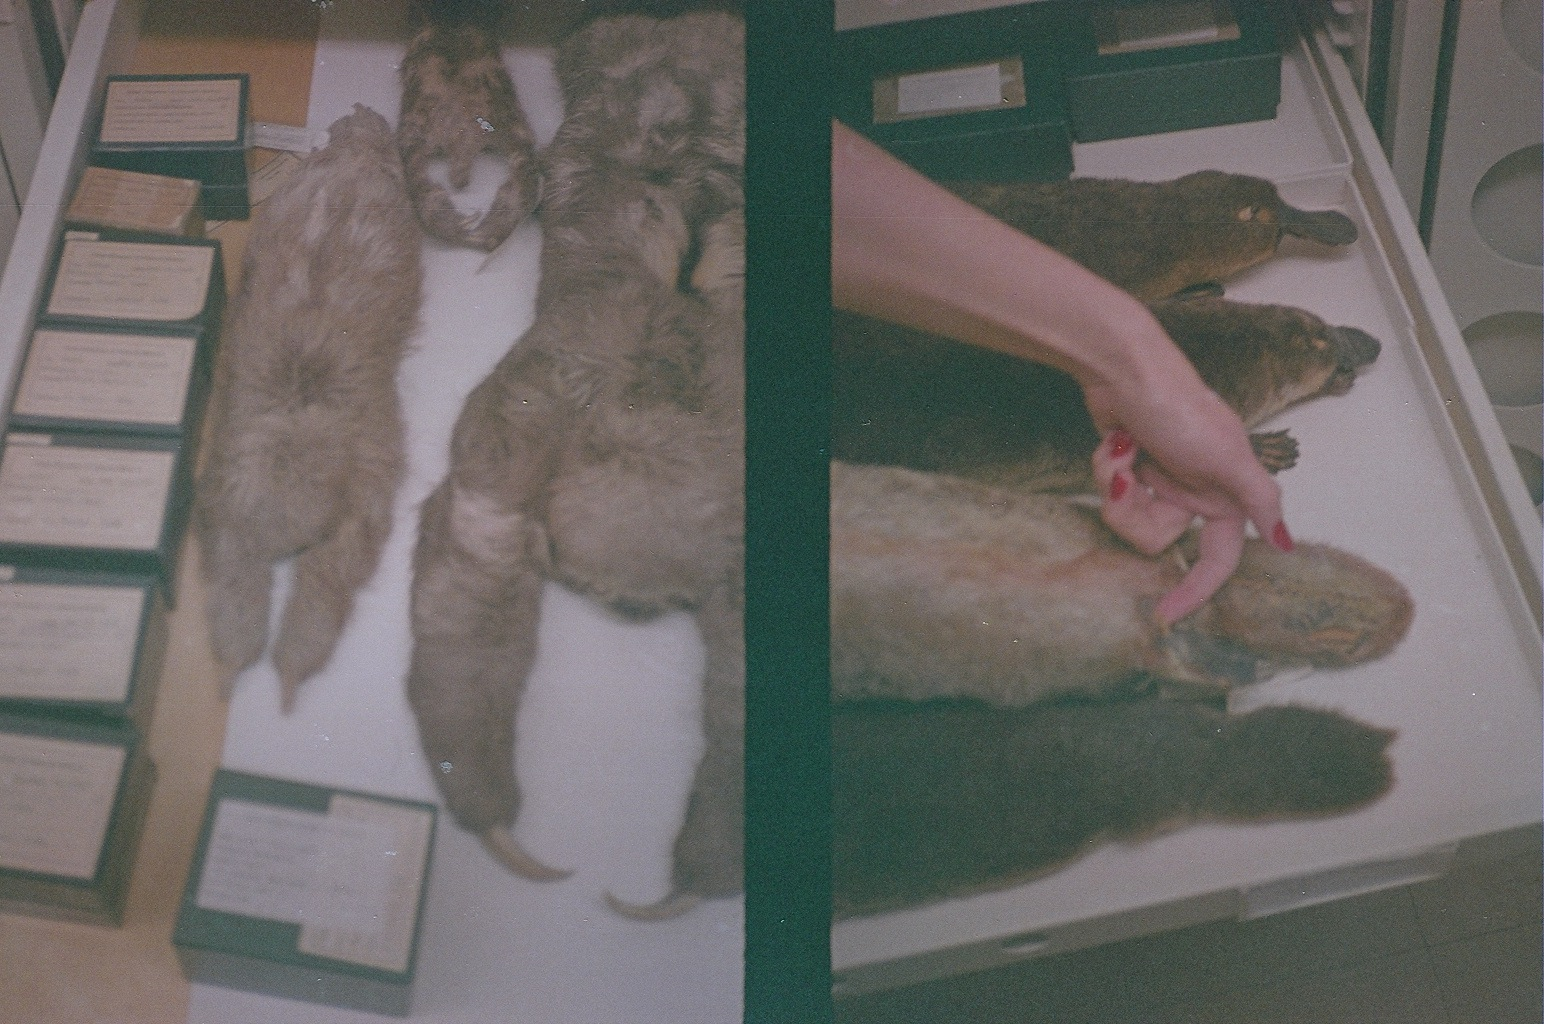 Left: two-toed sloth study skins. Right: platypus study skins. Taken at the Field Museum, October 2013. Canon Demi (half-frame) camera with expired film - excuse the dark exposure.